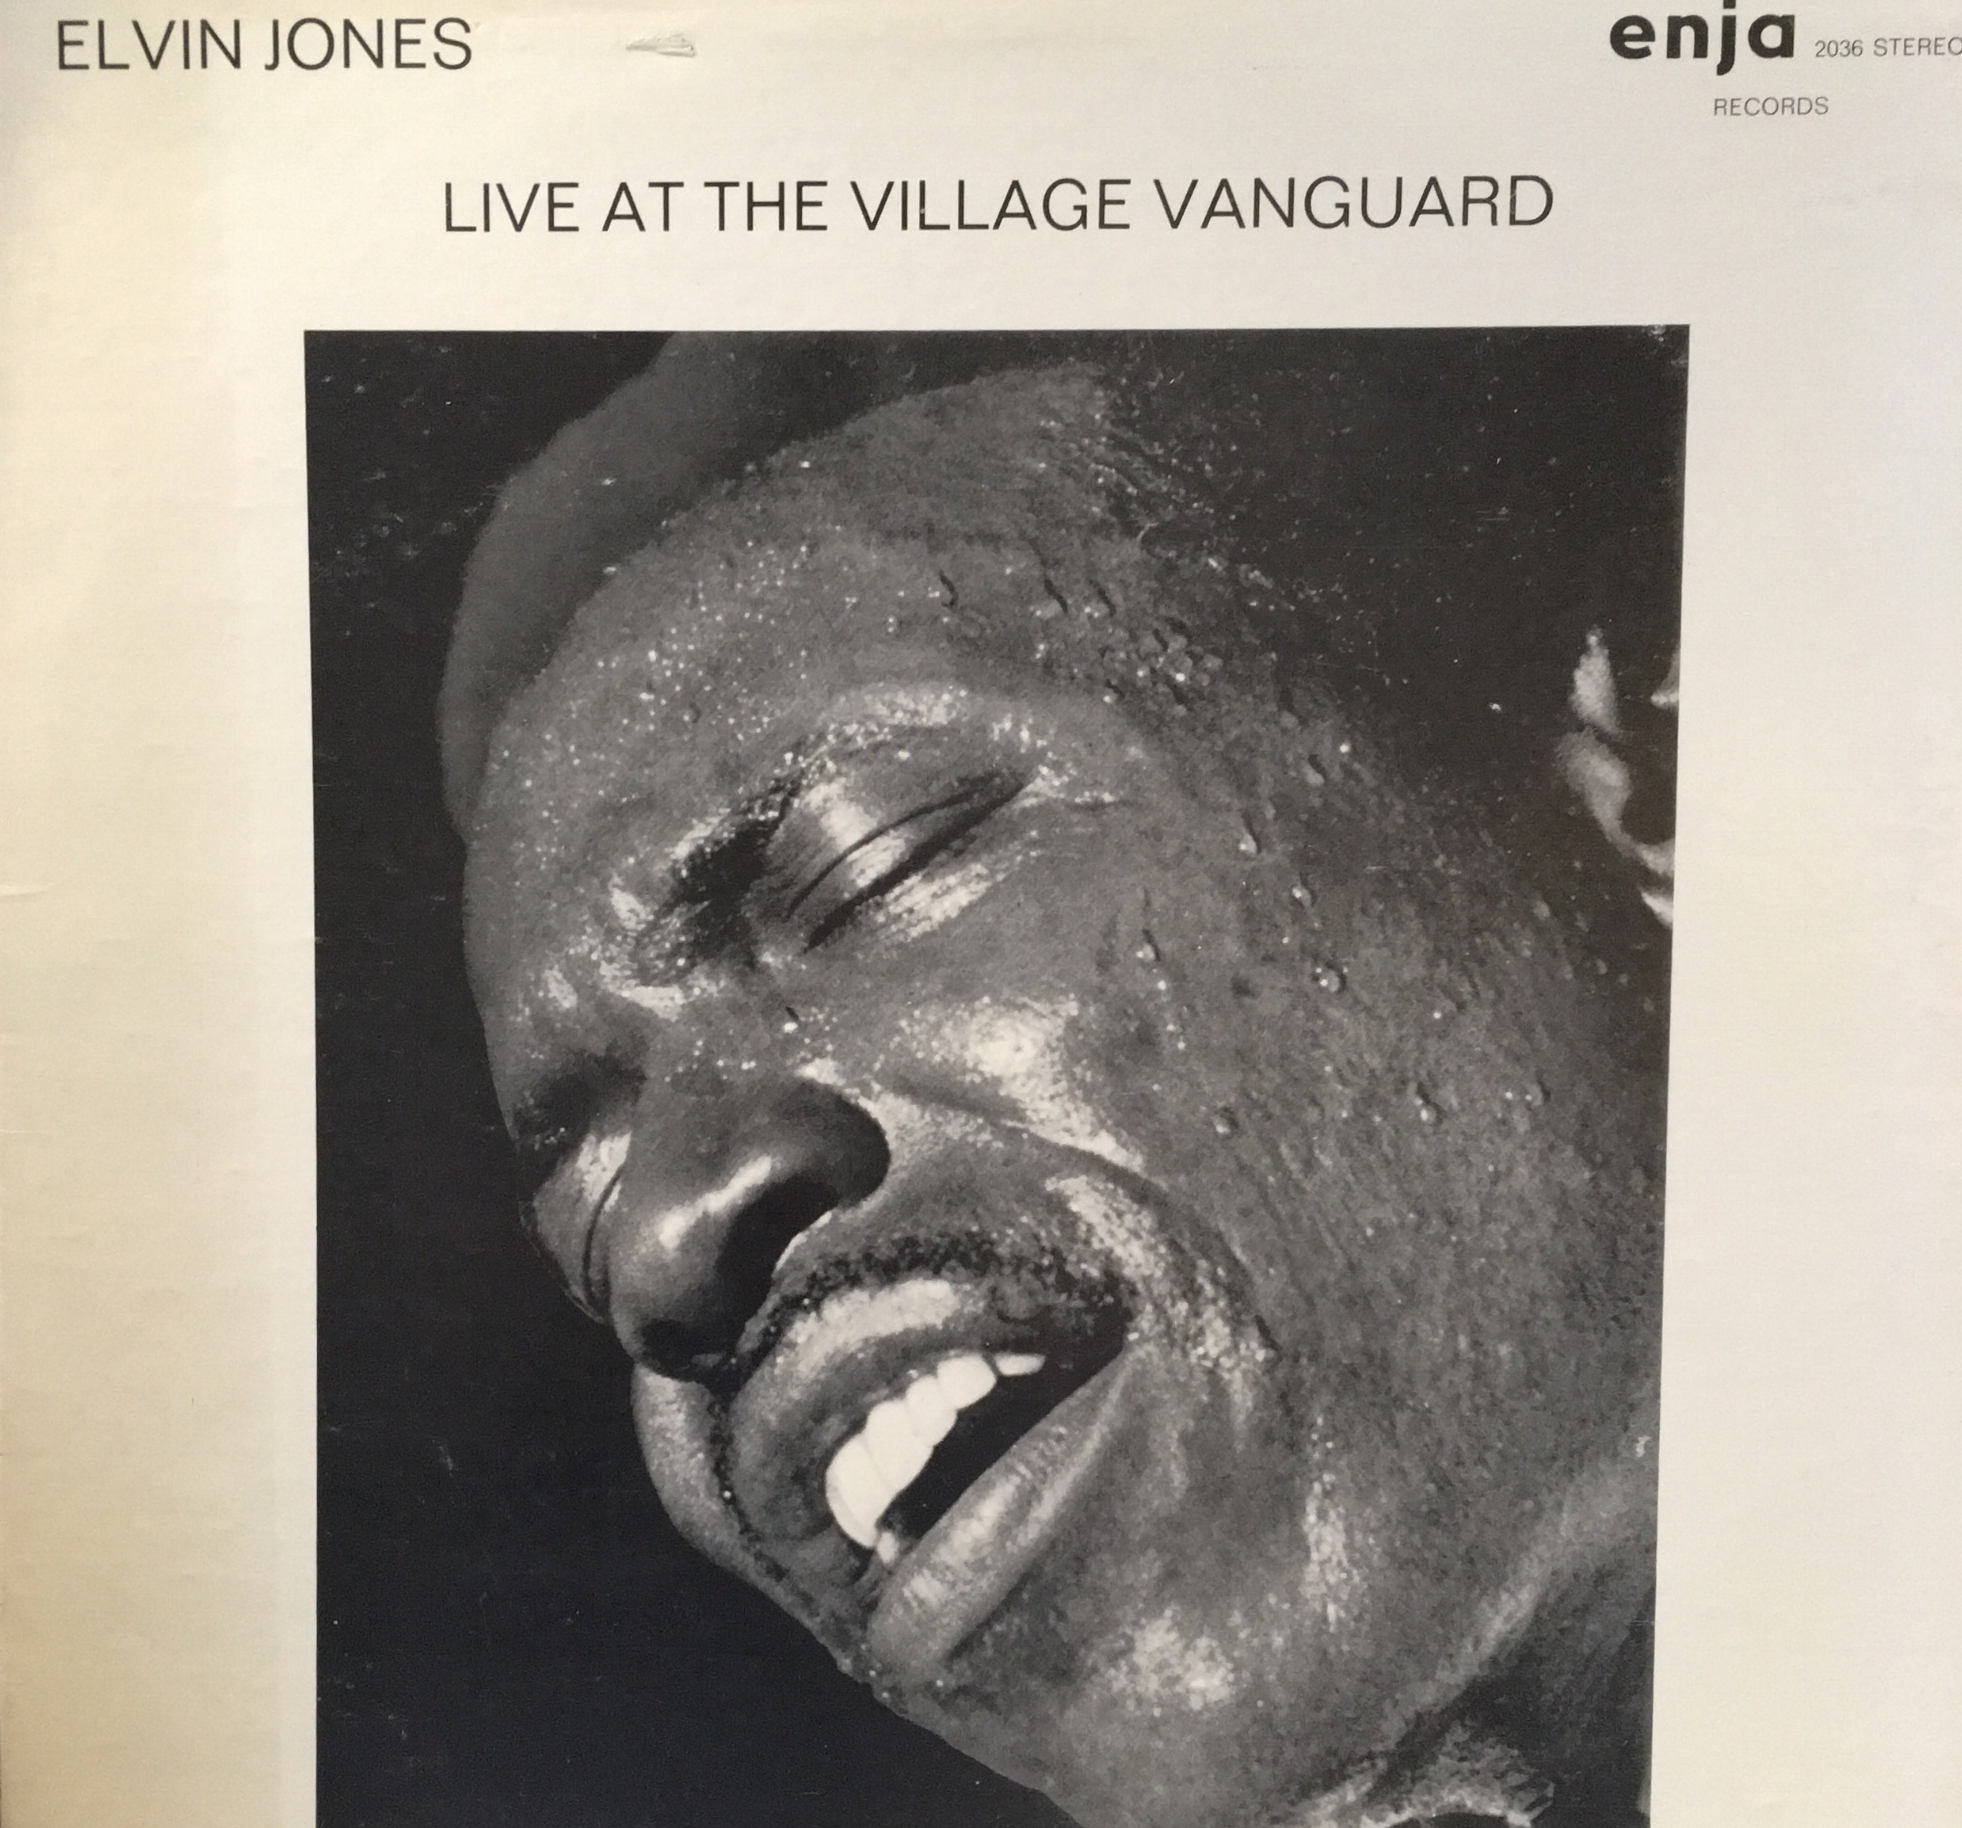 Elvin Jones Live at the Village Vanguard , Enja Records, recorded 1968, released 1974